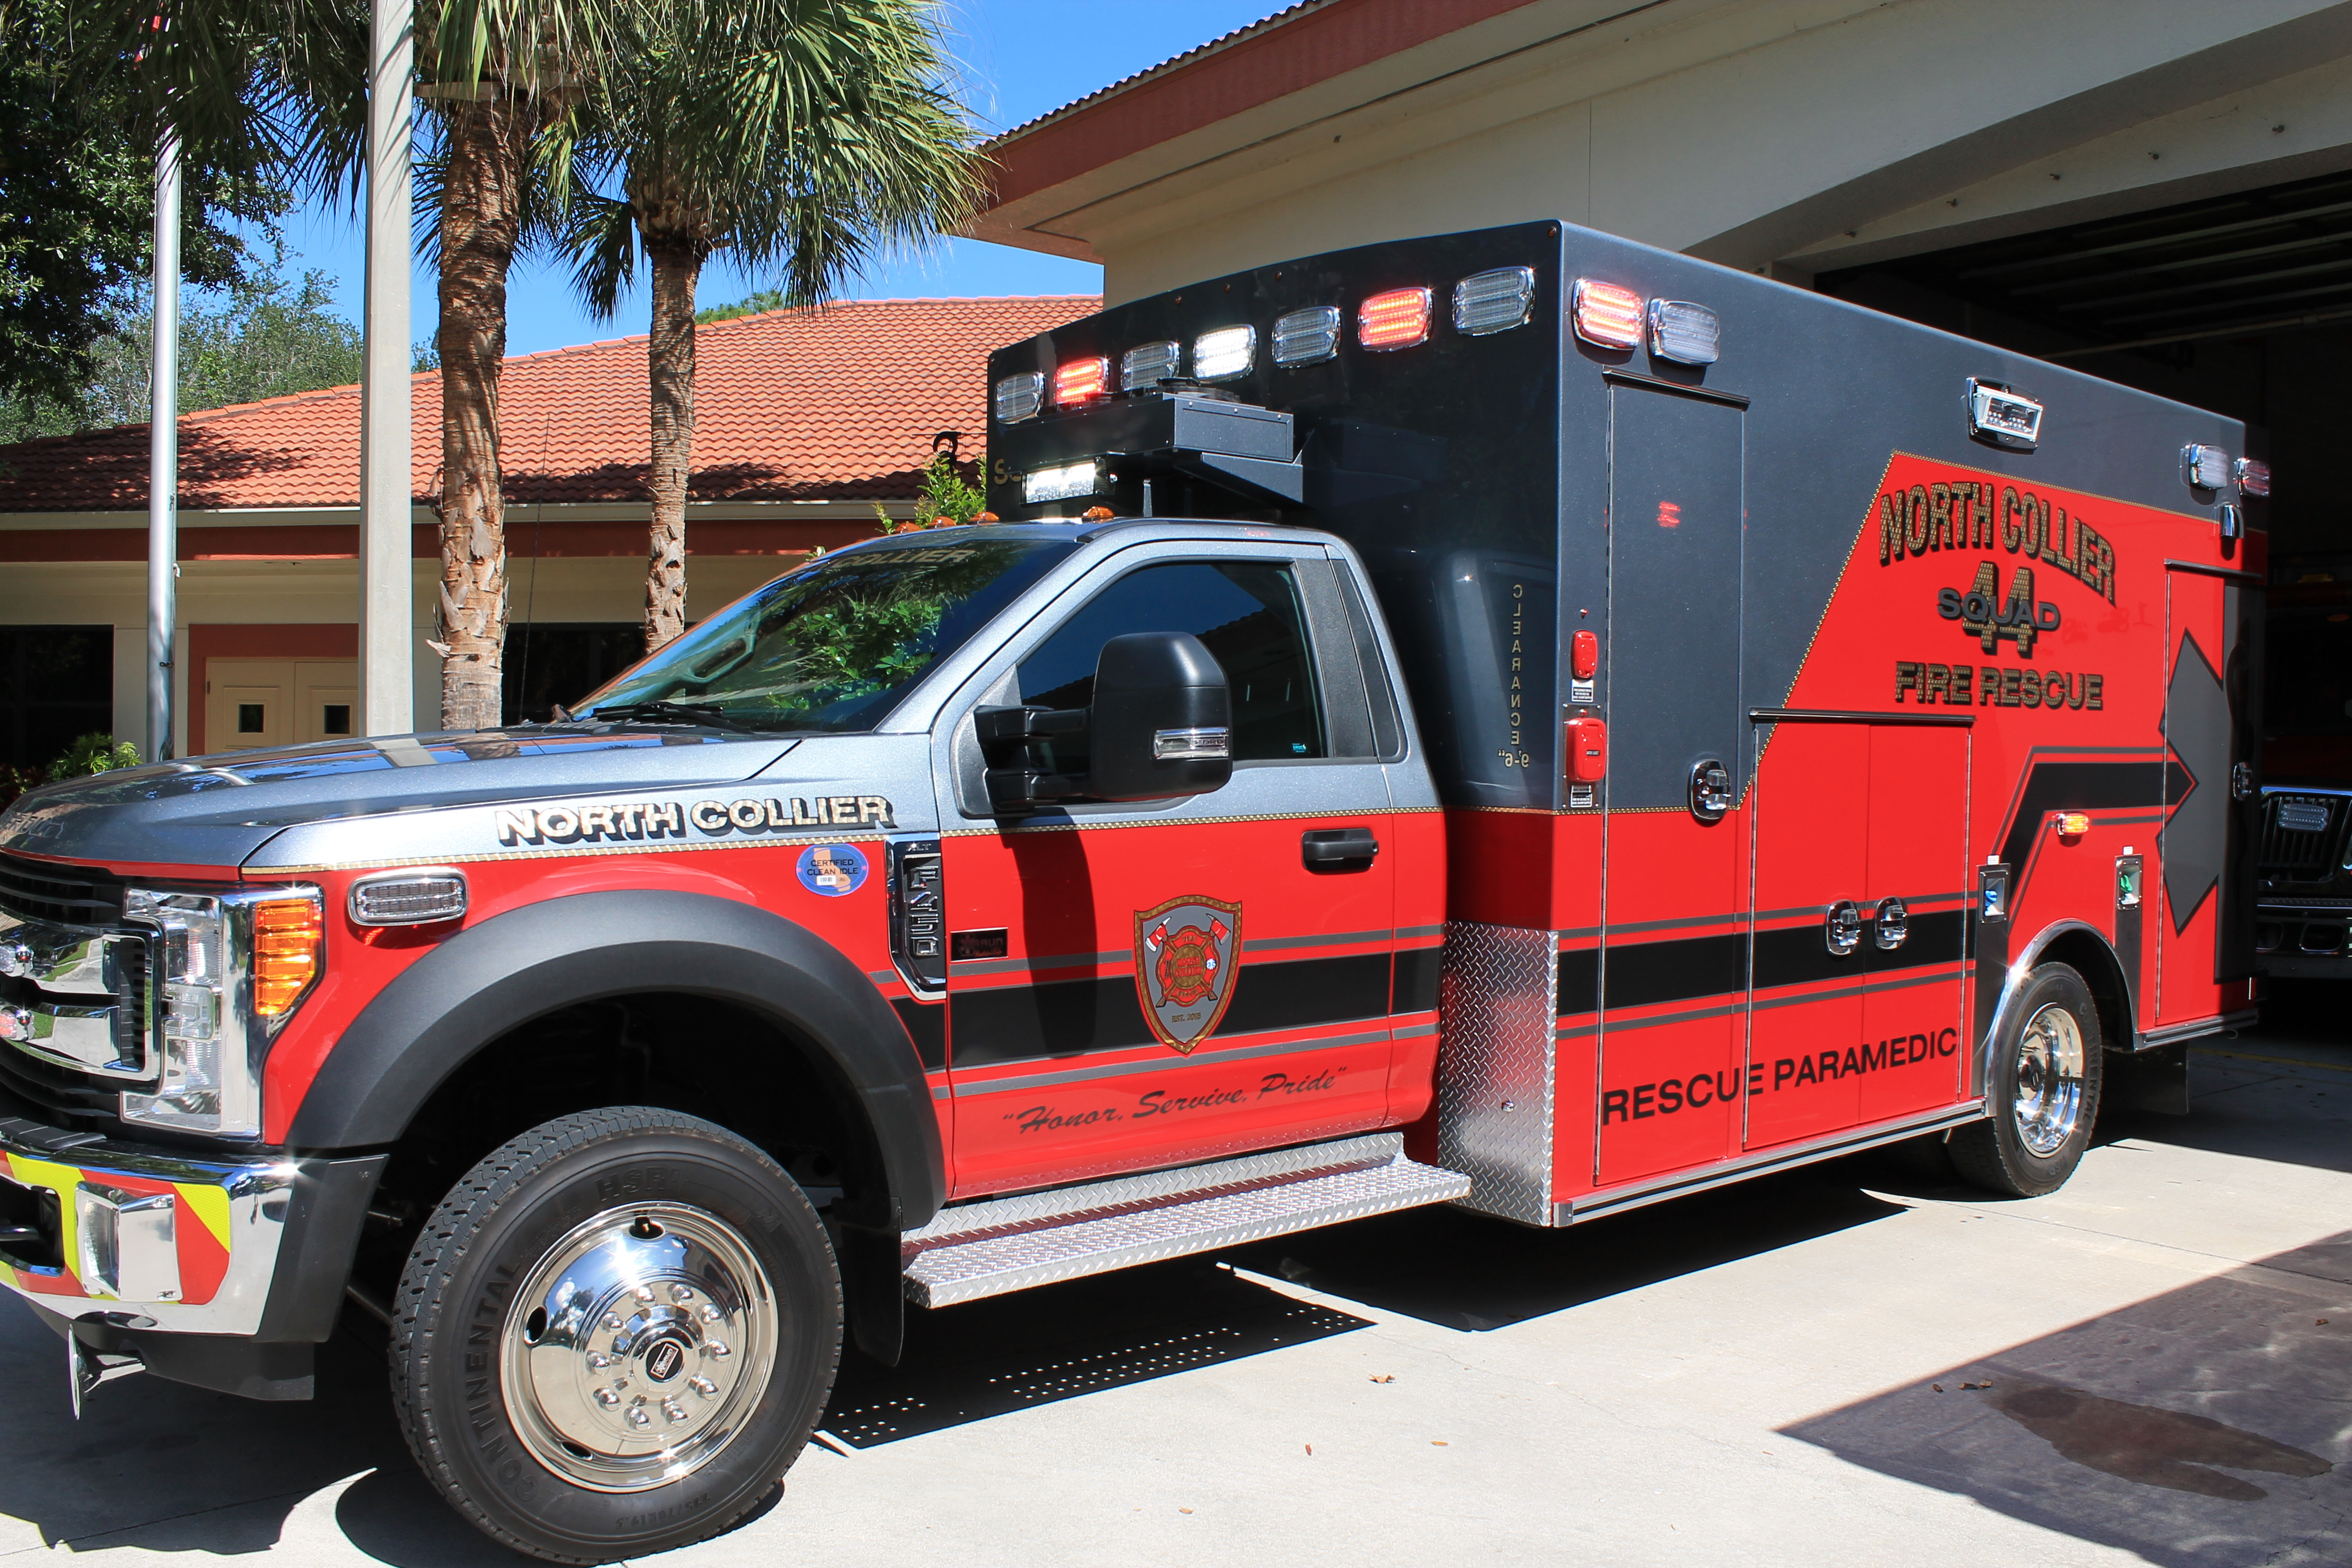 Why Does Both an Ambulance & Fire Truck Respond when 911 is Called?